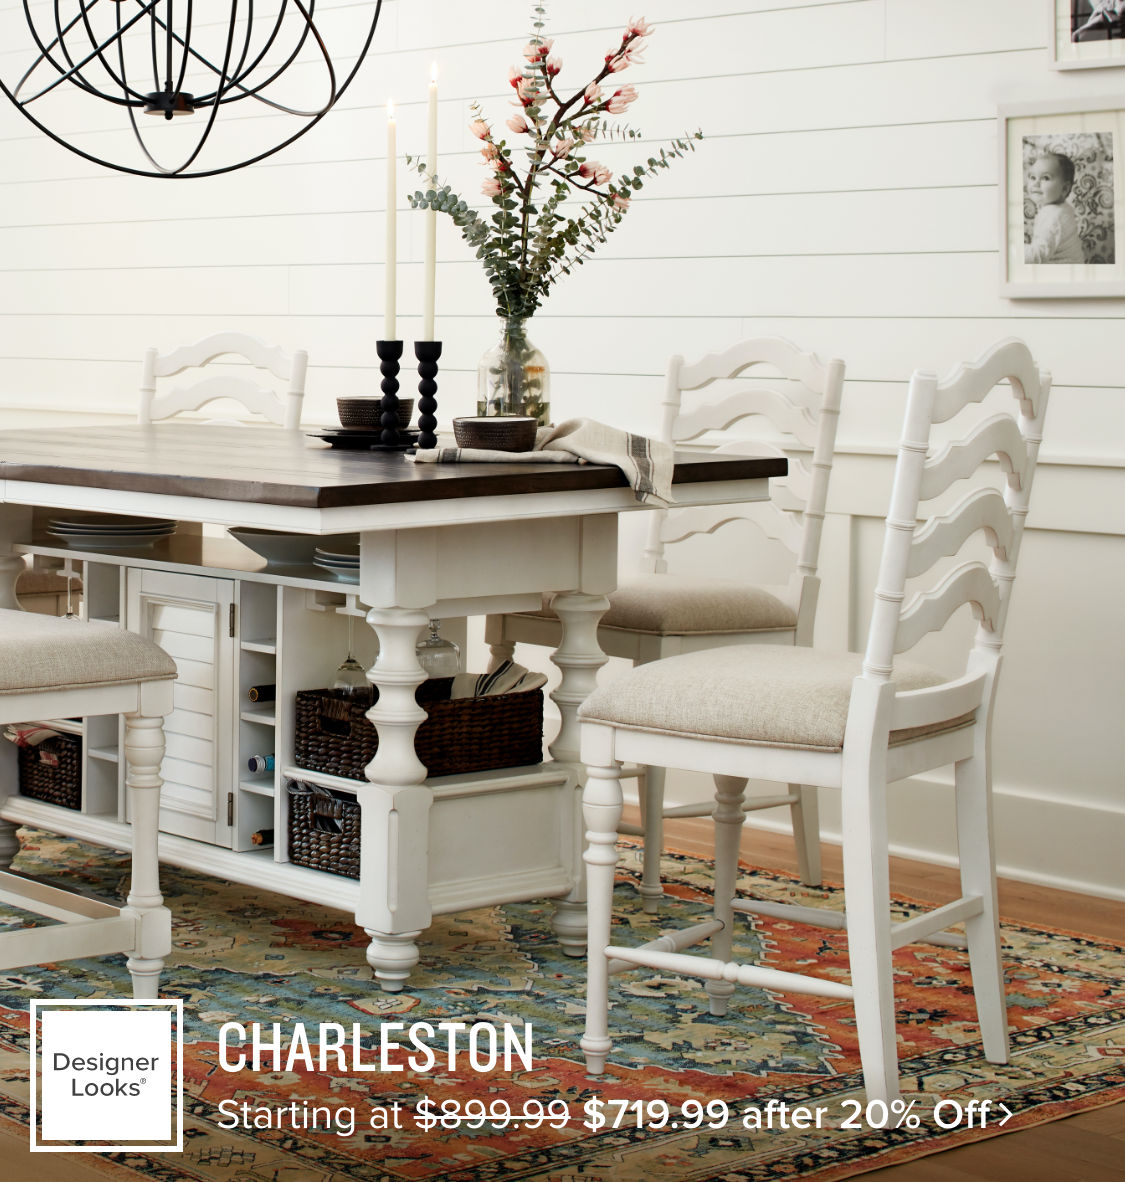 Charleston Dining starting at $719.99 after 20% off